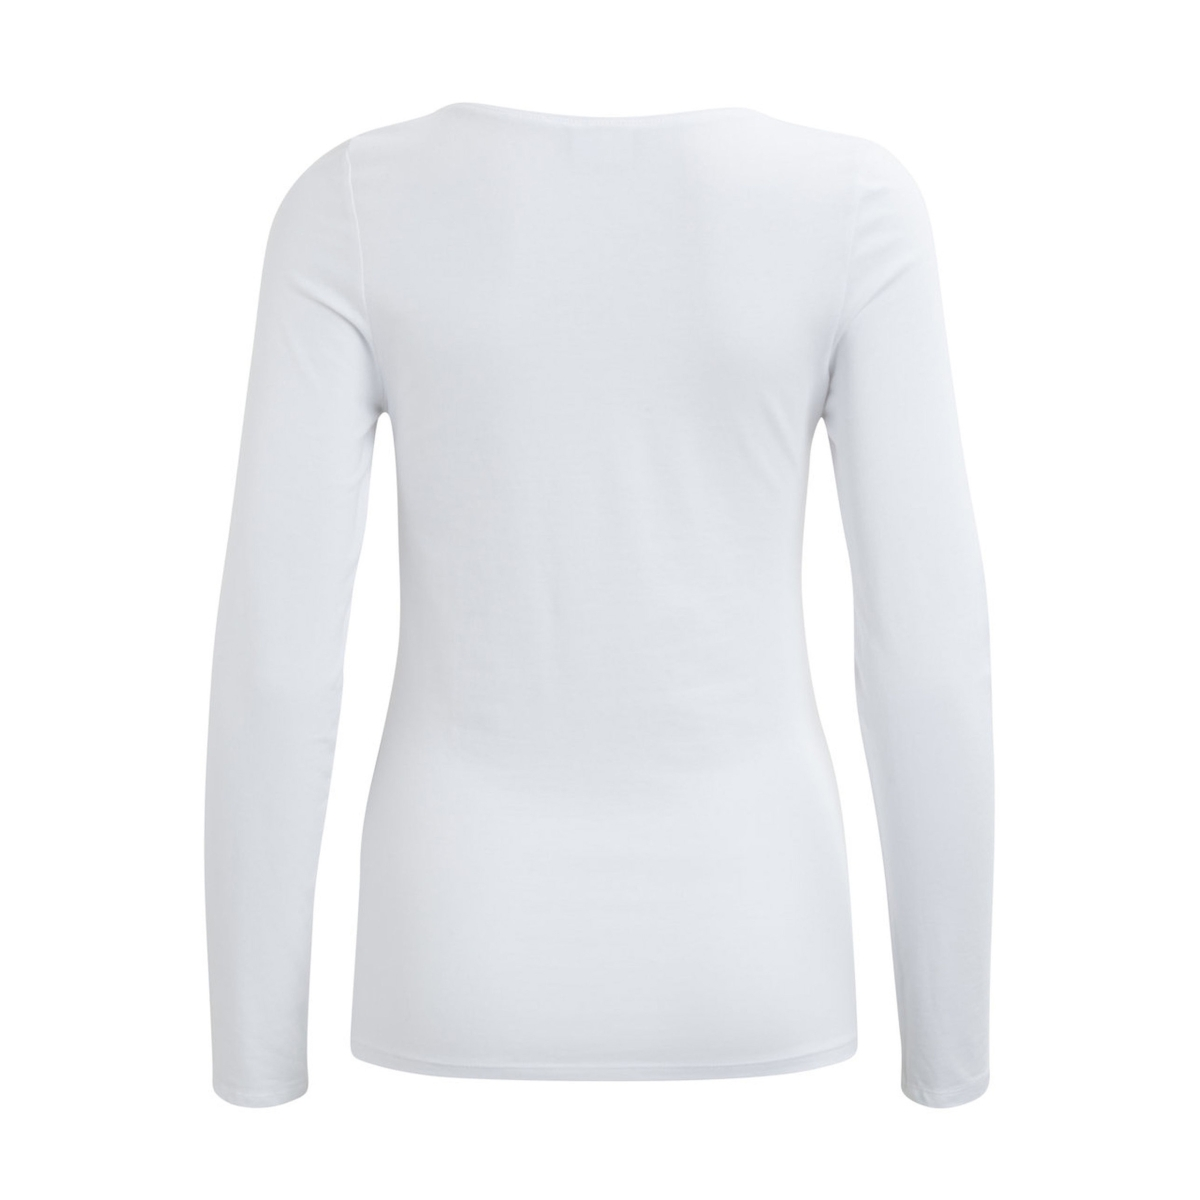 viofficiel new l/s top 14032645 vila t-shirt optical snow